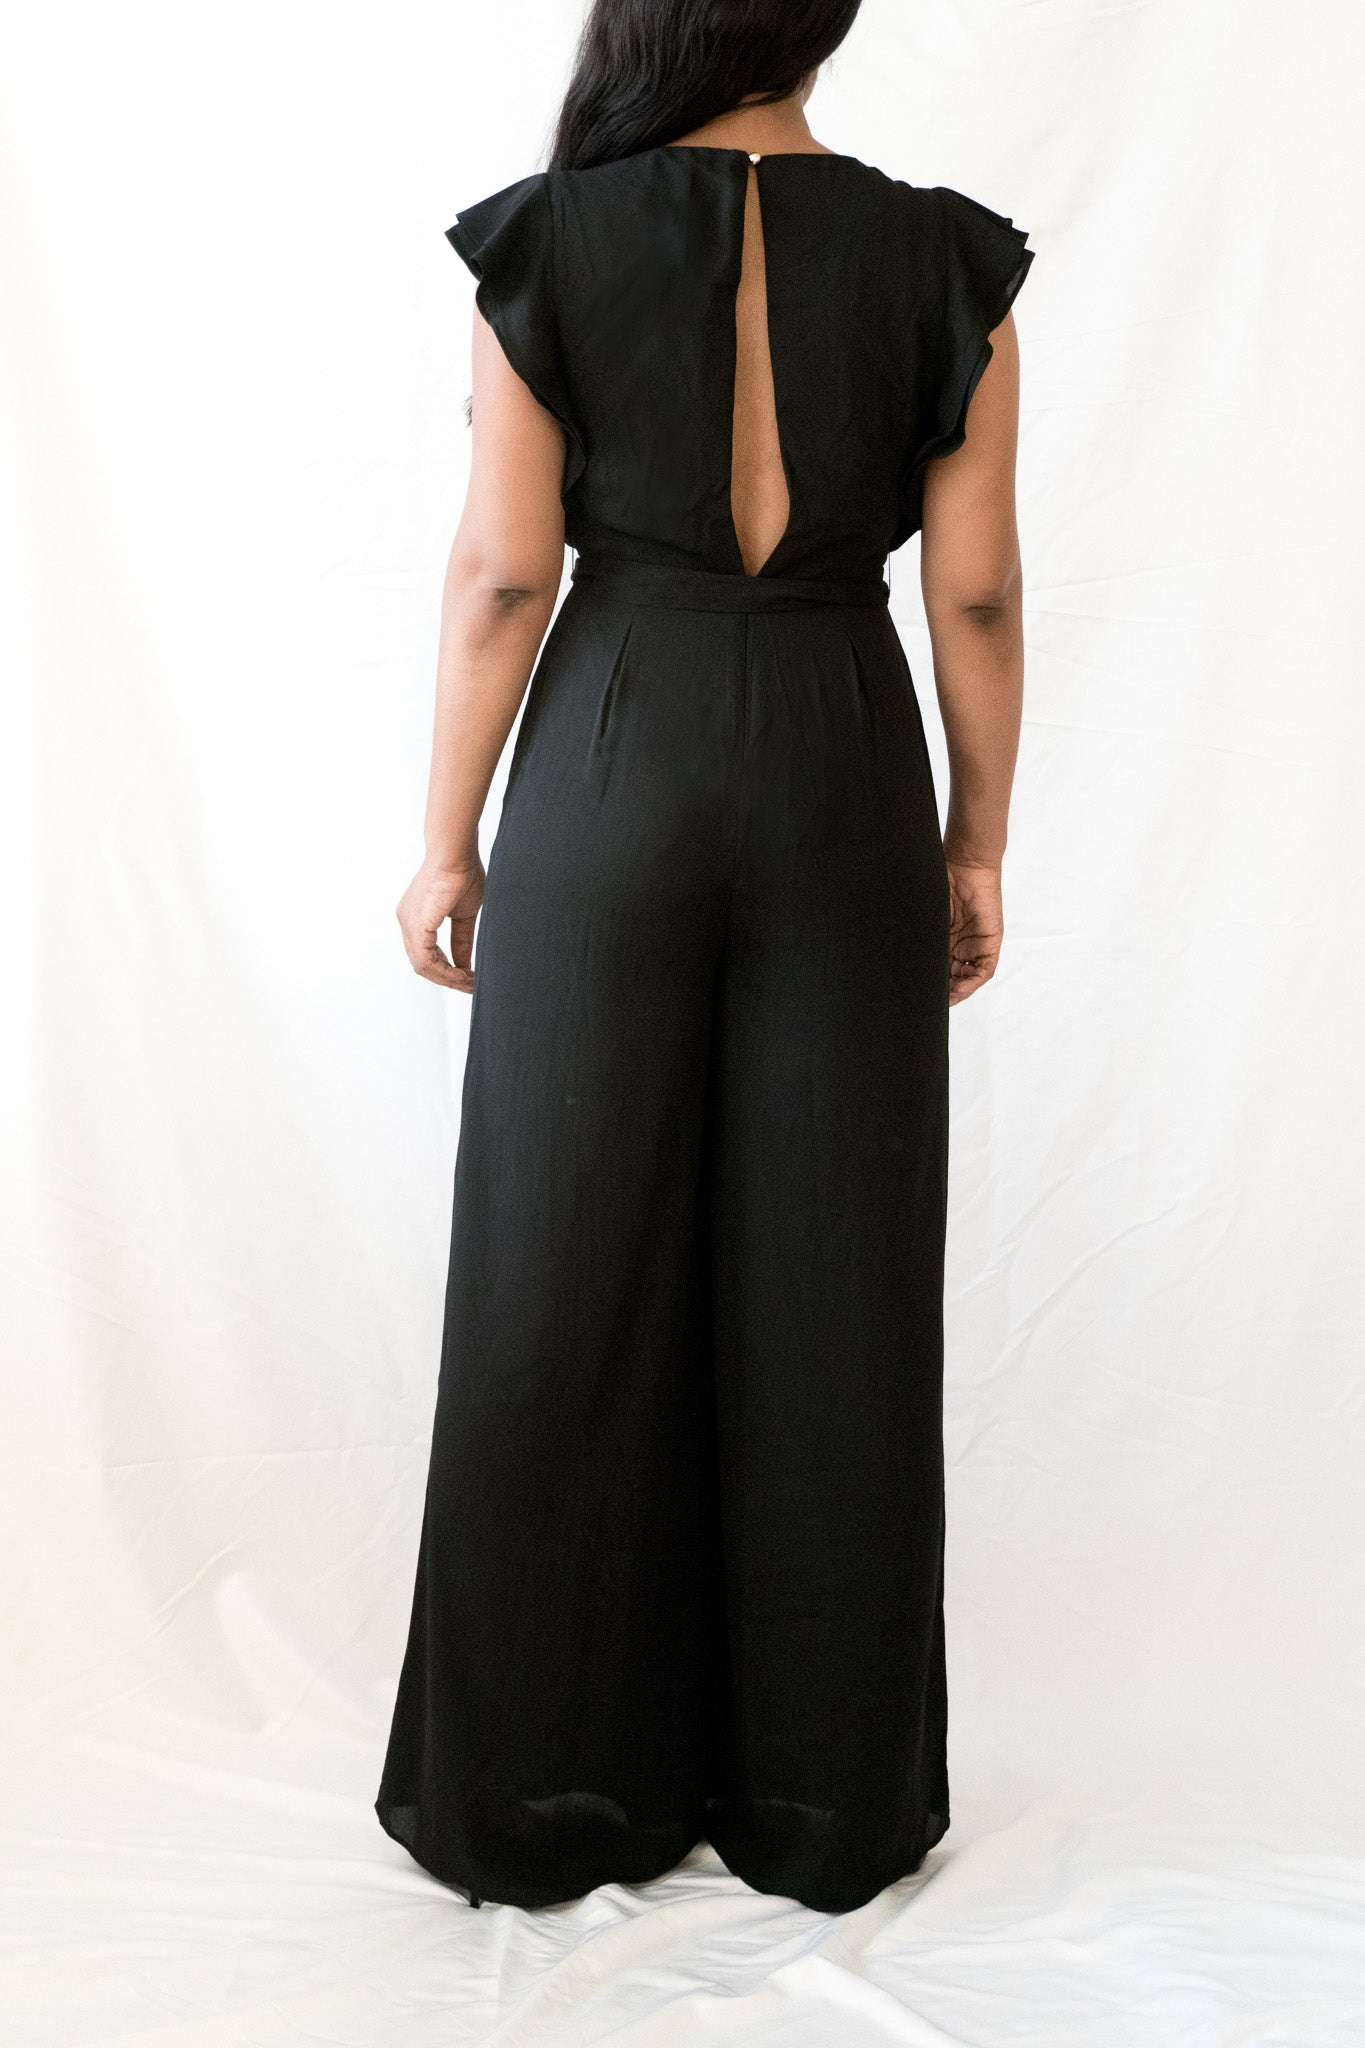 Give them Sass Ruffle Wide Leg Jumpsuit - BLANK Wardrobe